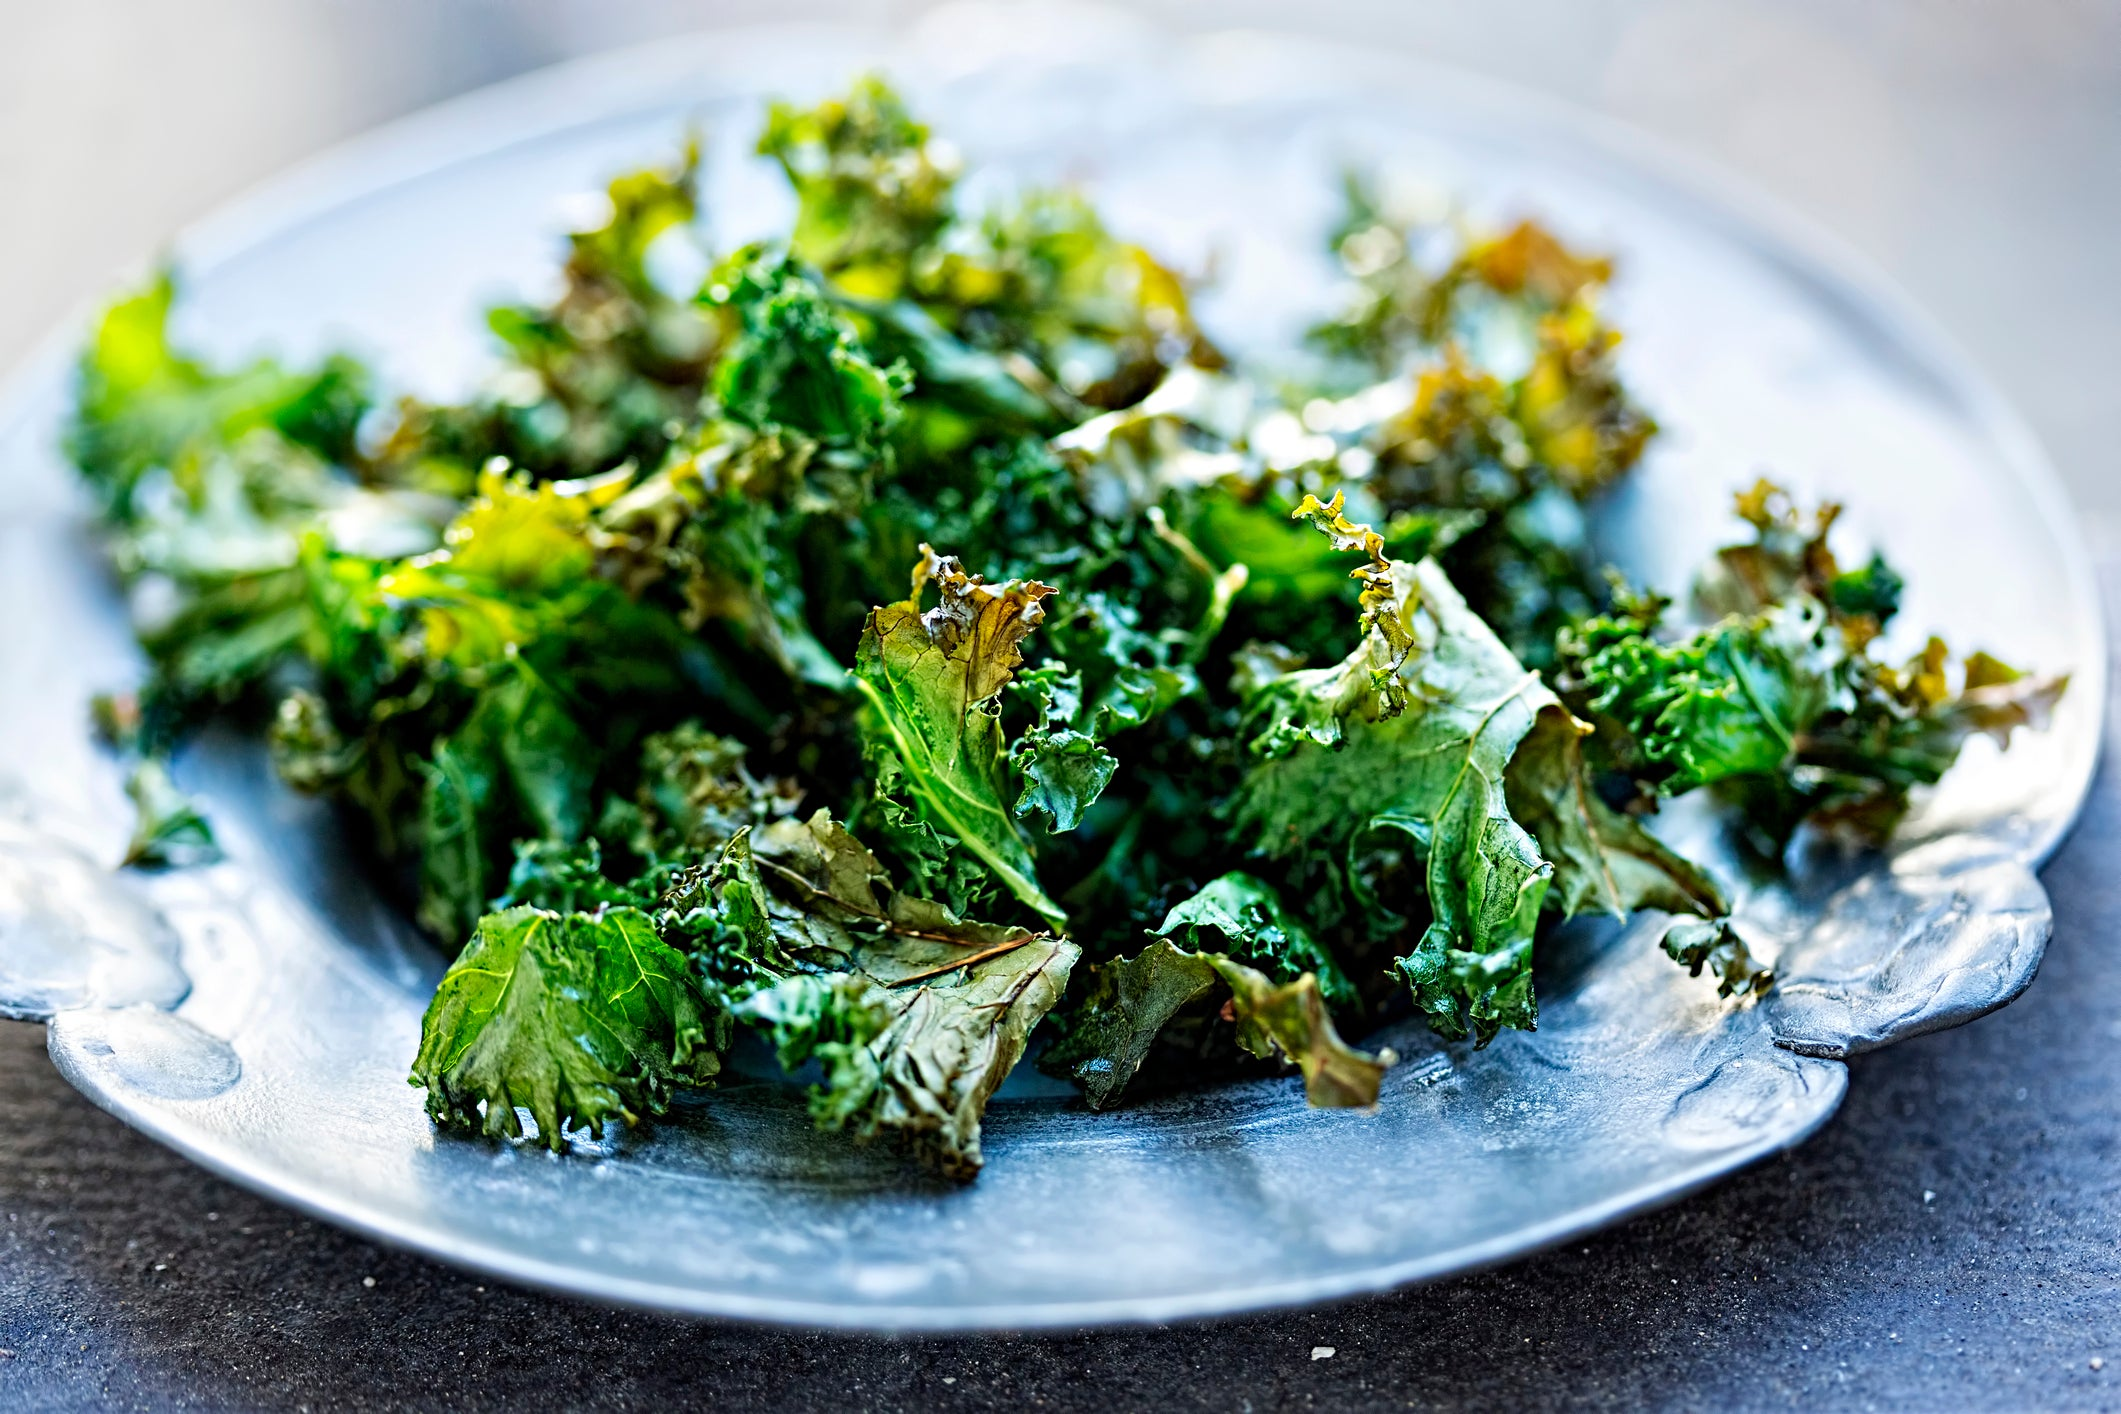 Eating Kale And Broccoli Can Help Prevent Colon Cancer Study Claims The Independent The Independent